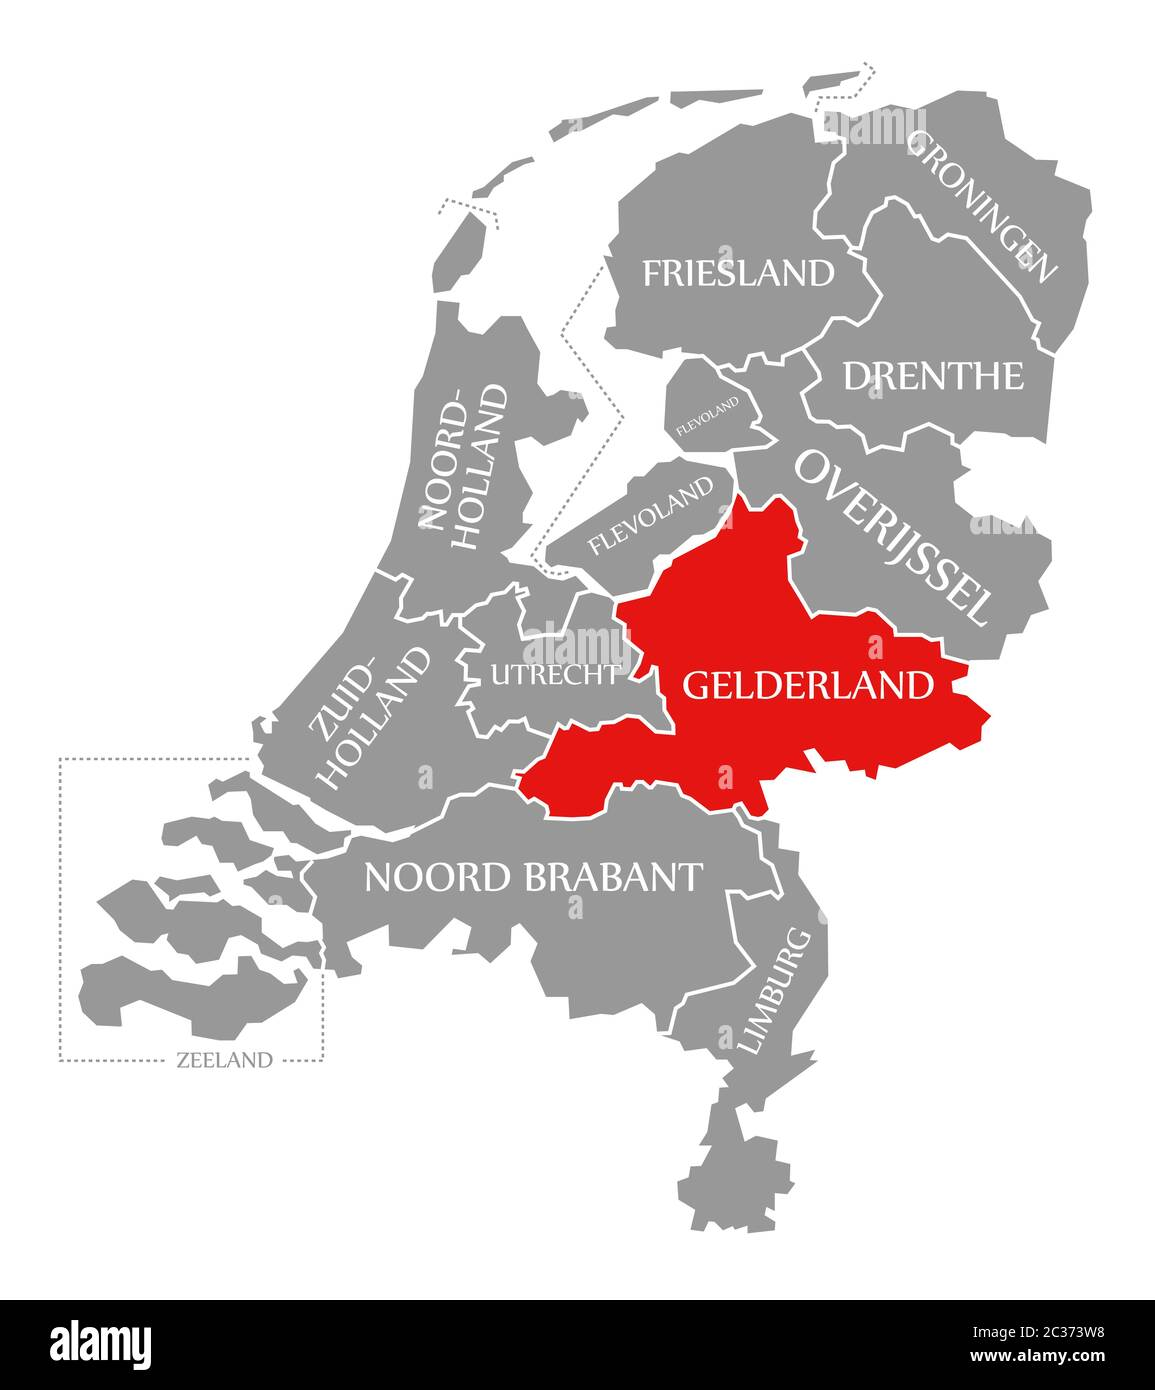 Netherlands Map Illustration High Resolution Stock Photography And Images Alamy